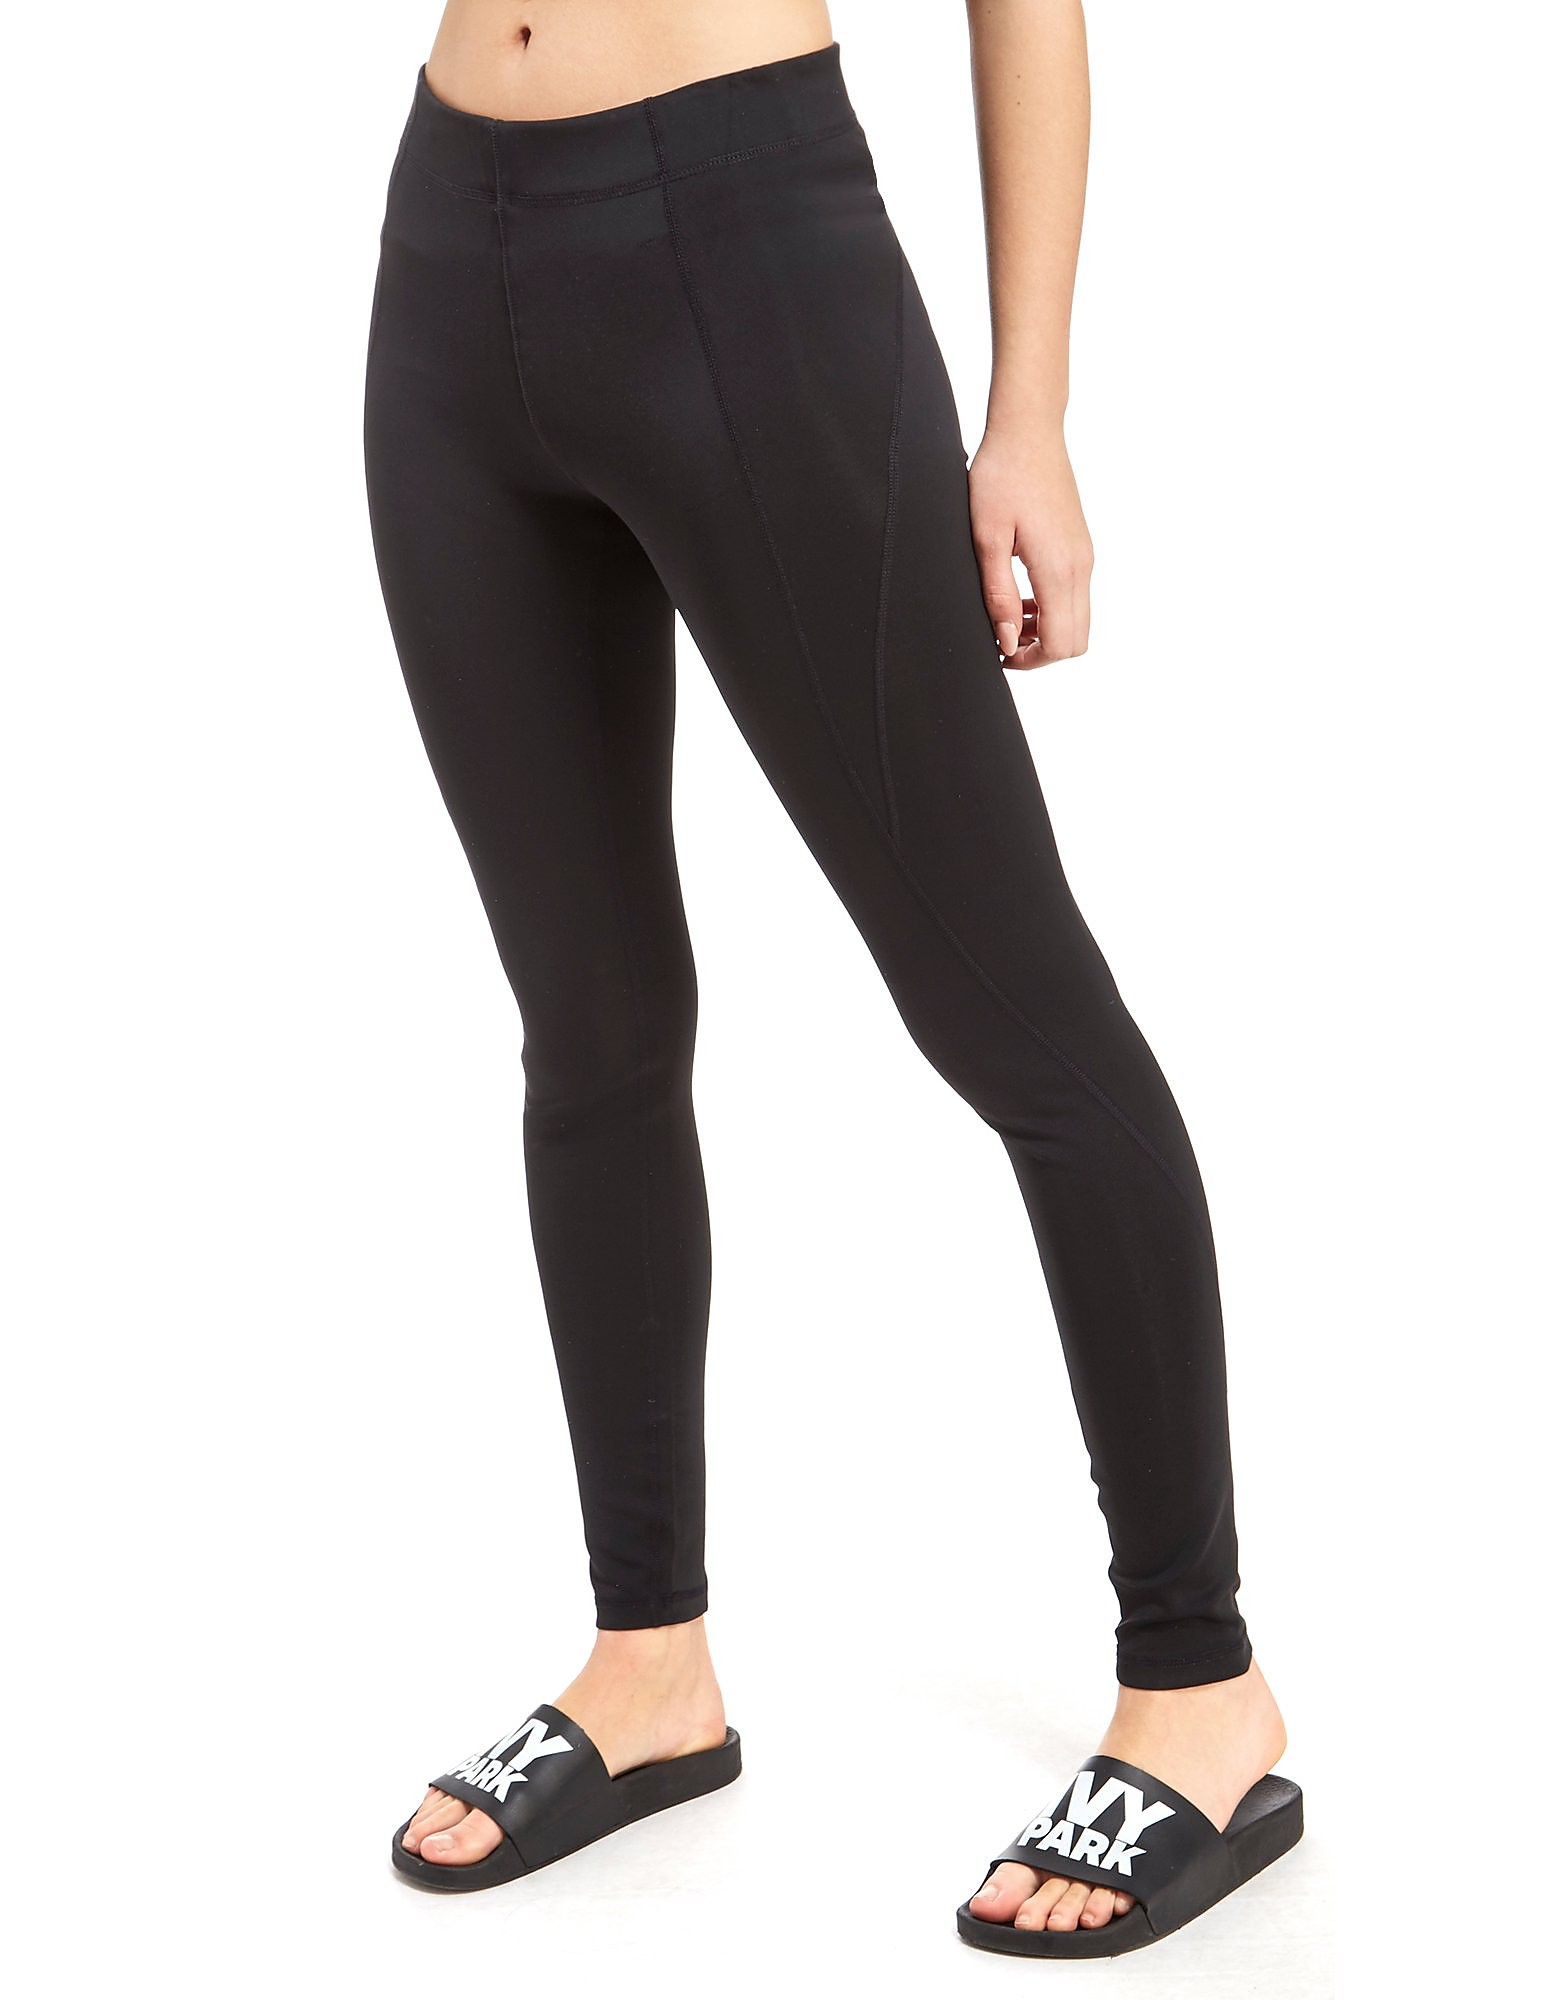 IVY PARK Logo Mid Rise Tights